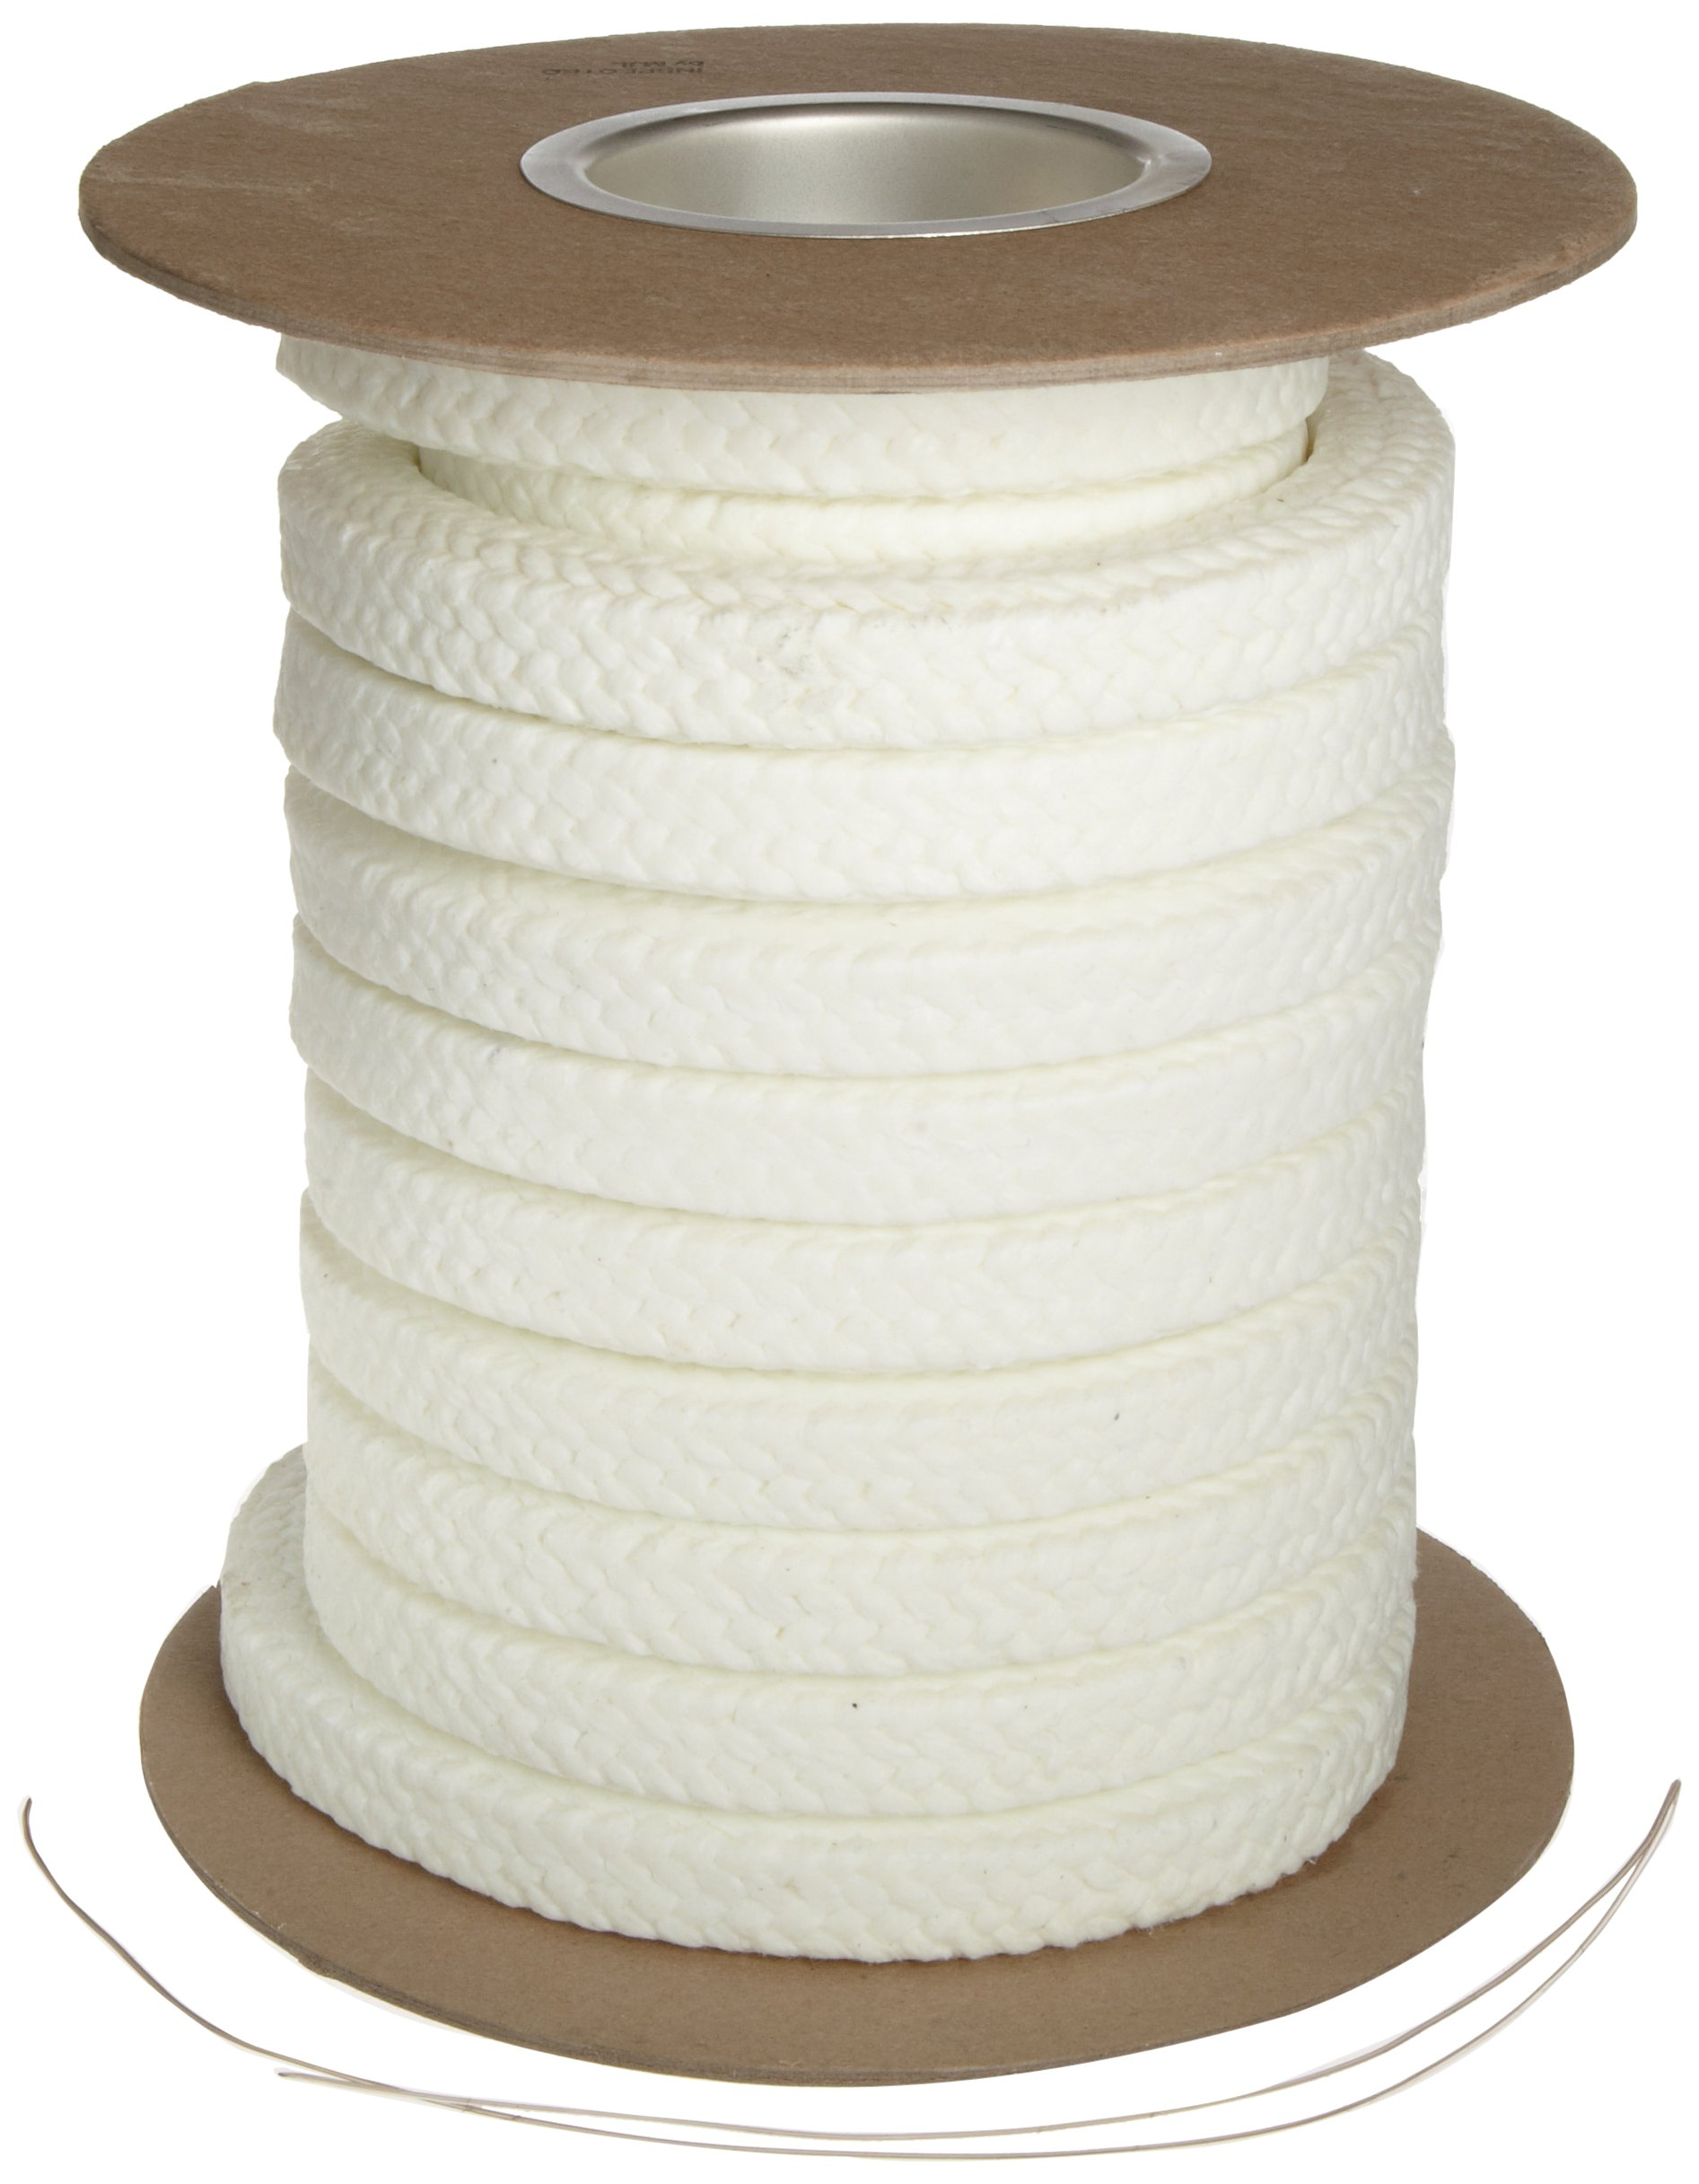 Palmetto 1347AF Series Synthetic with PTFE & Lube Compression Packing Seal, White, 3/8'' Square, 10' Length